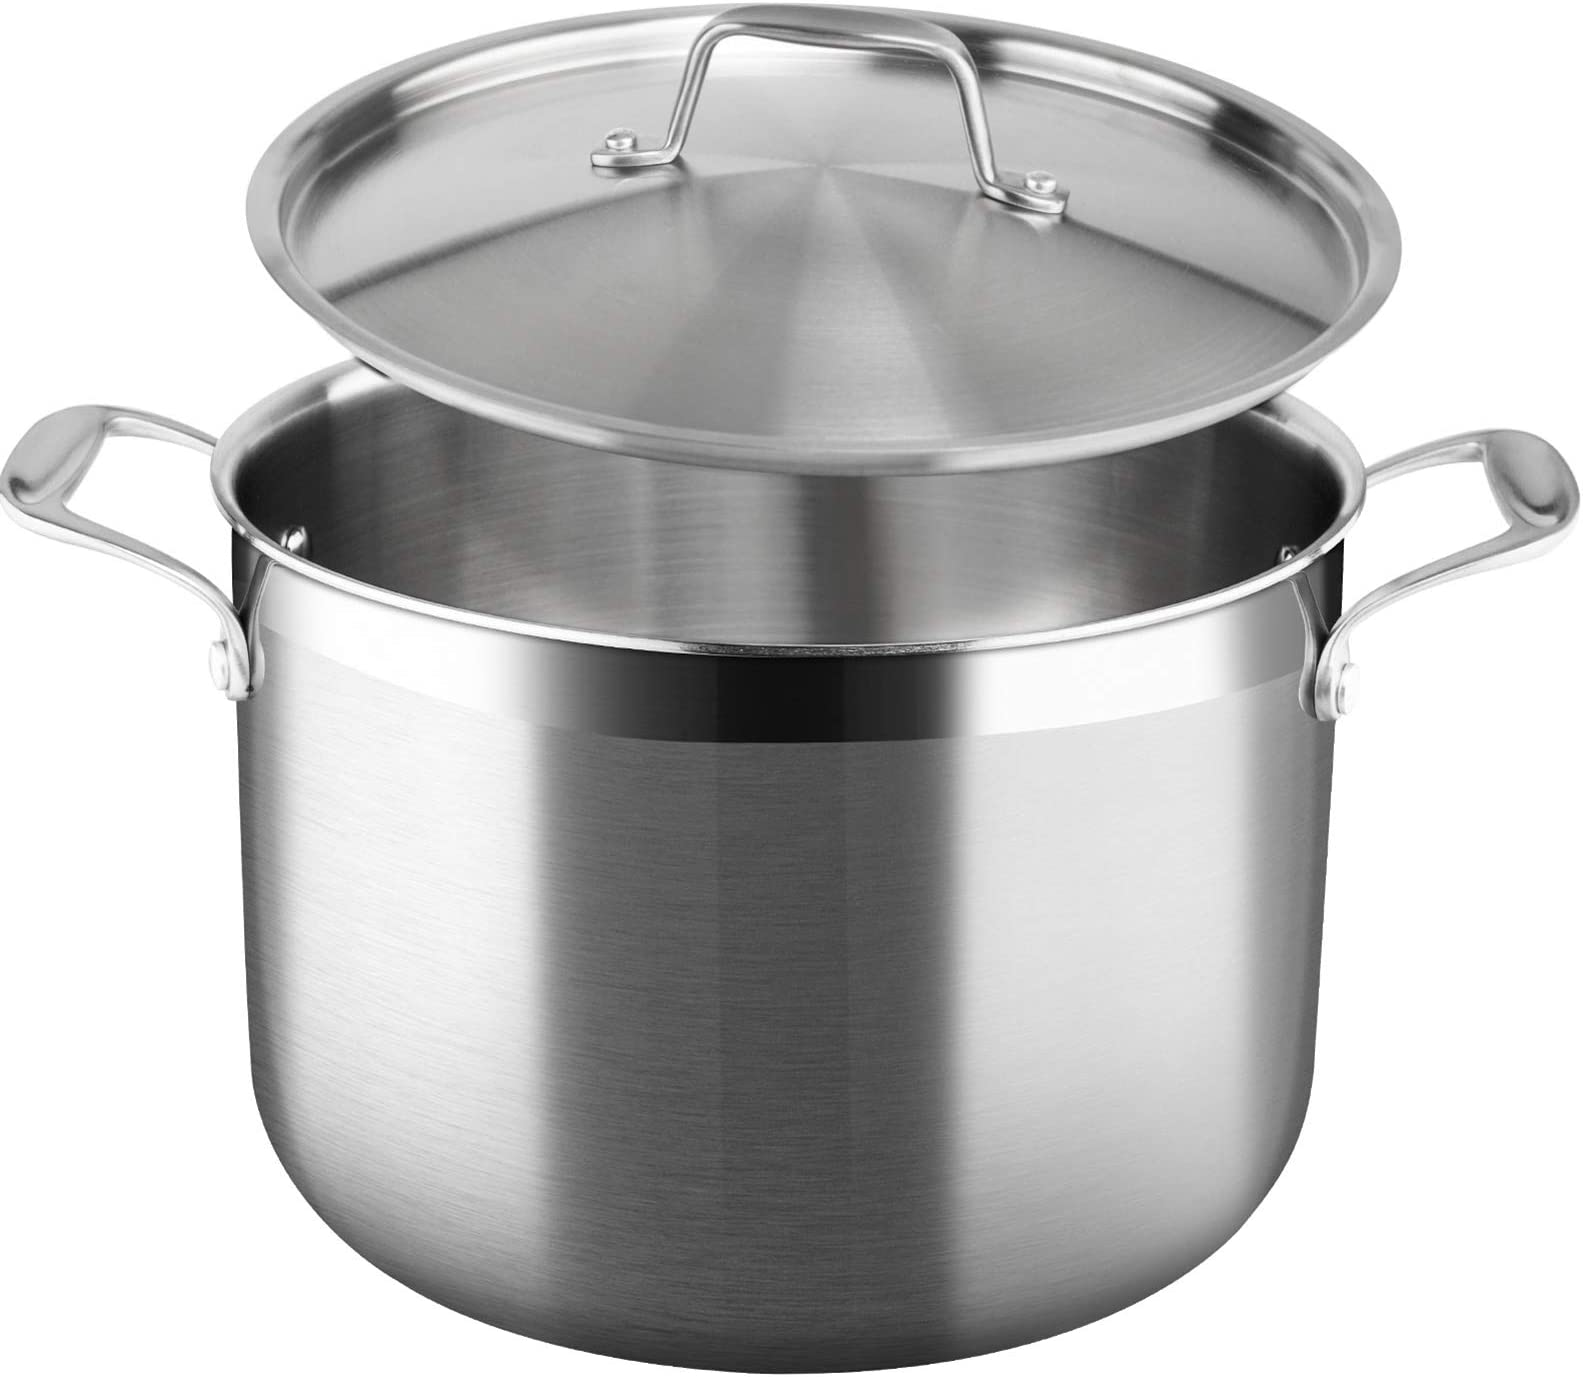 Duxtop Whole-Clad Tri-Ply Stainless Steel Stockpot with Lid, 8 Quart, Kitchen Induction Cookware